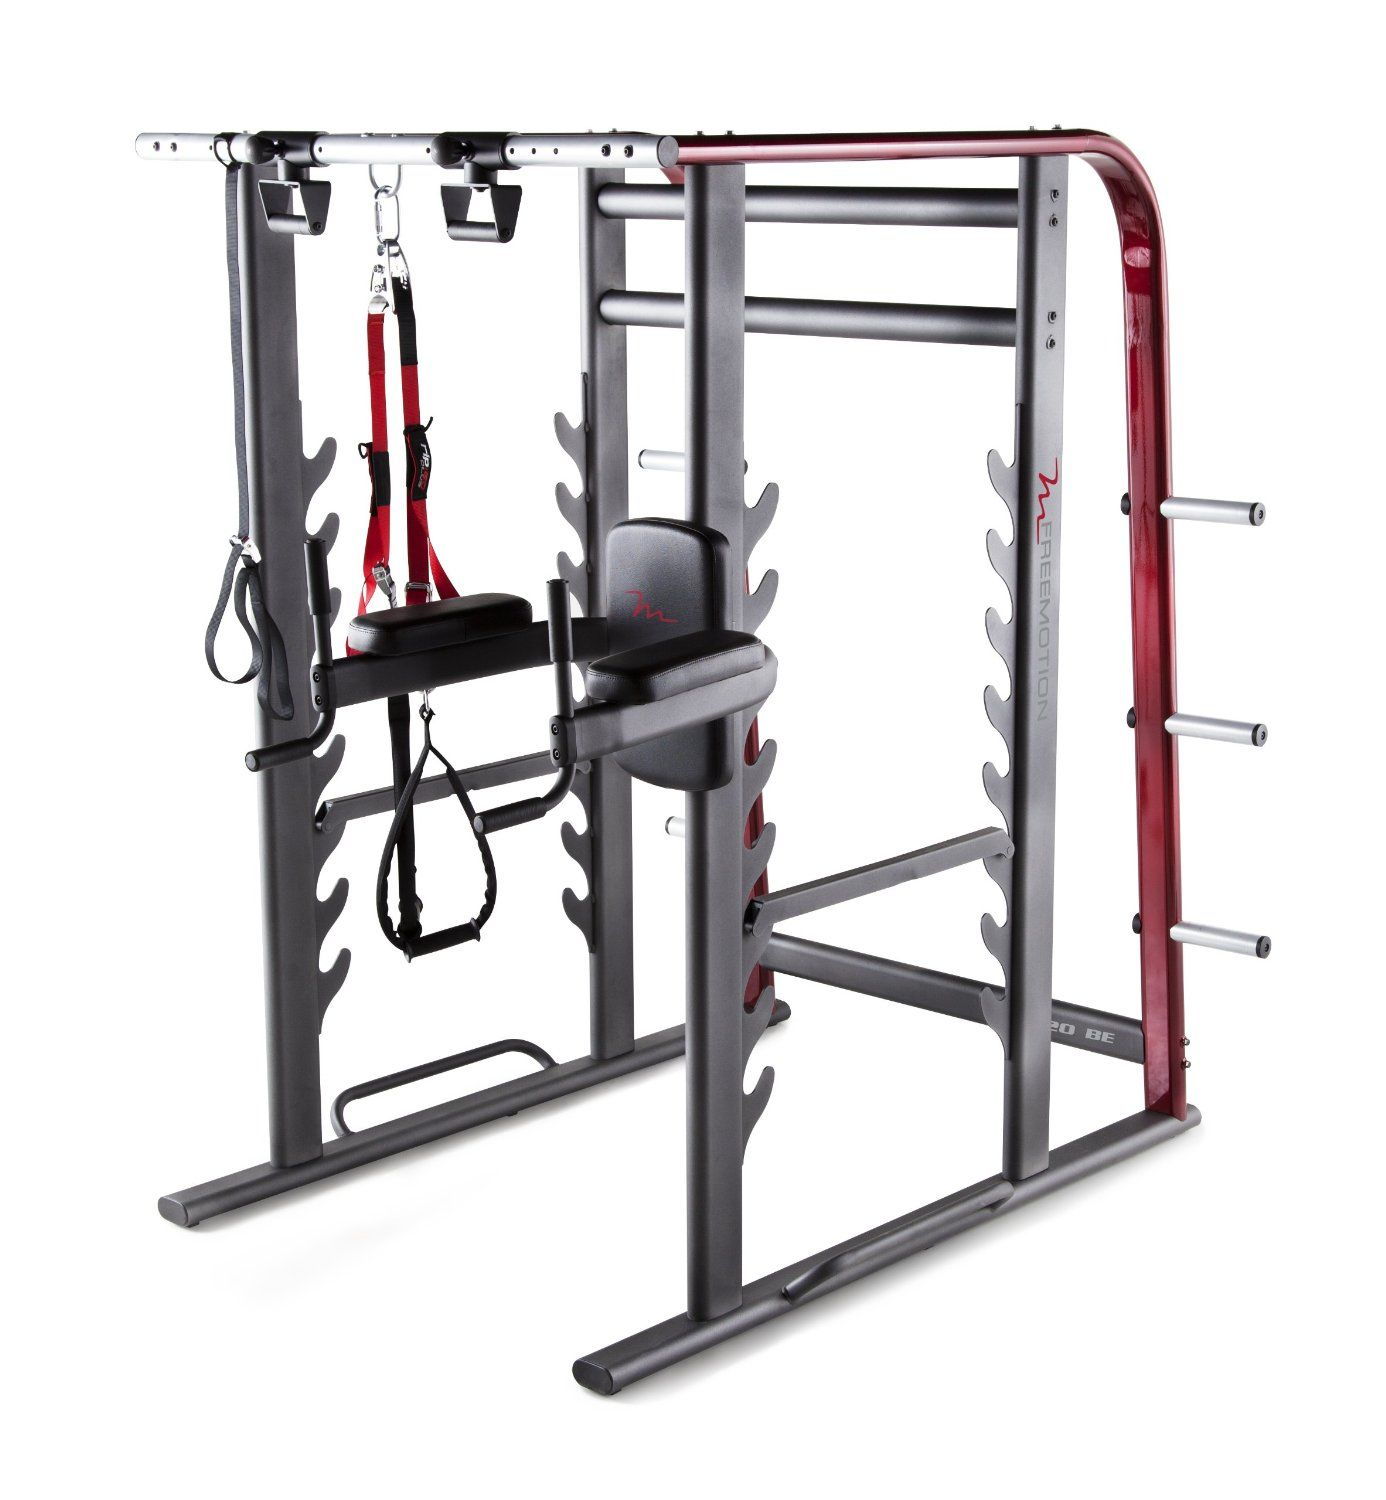 Amazon.com : FreeMotion 620 BE Power Cage : Sports & Outdoors ...